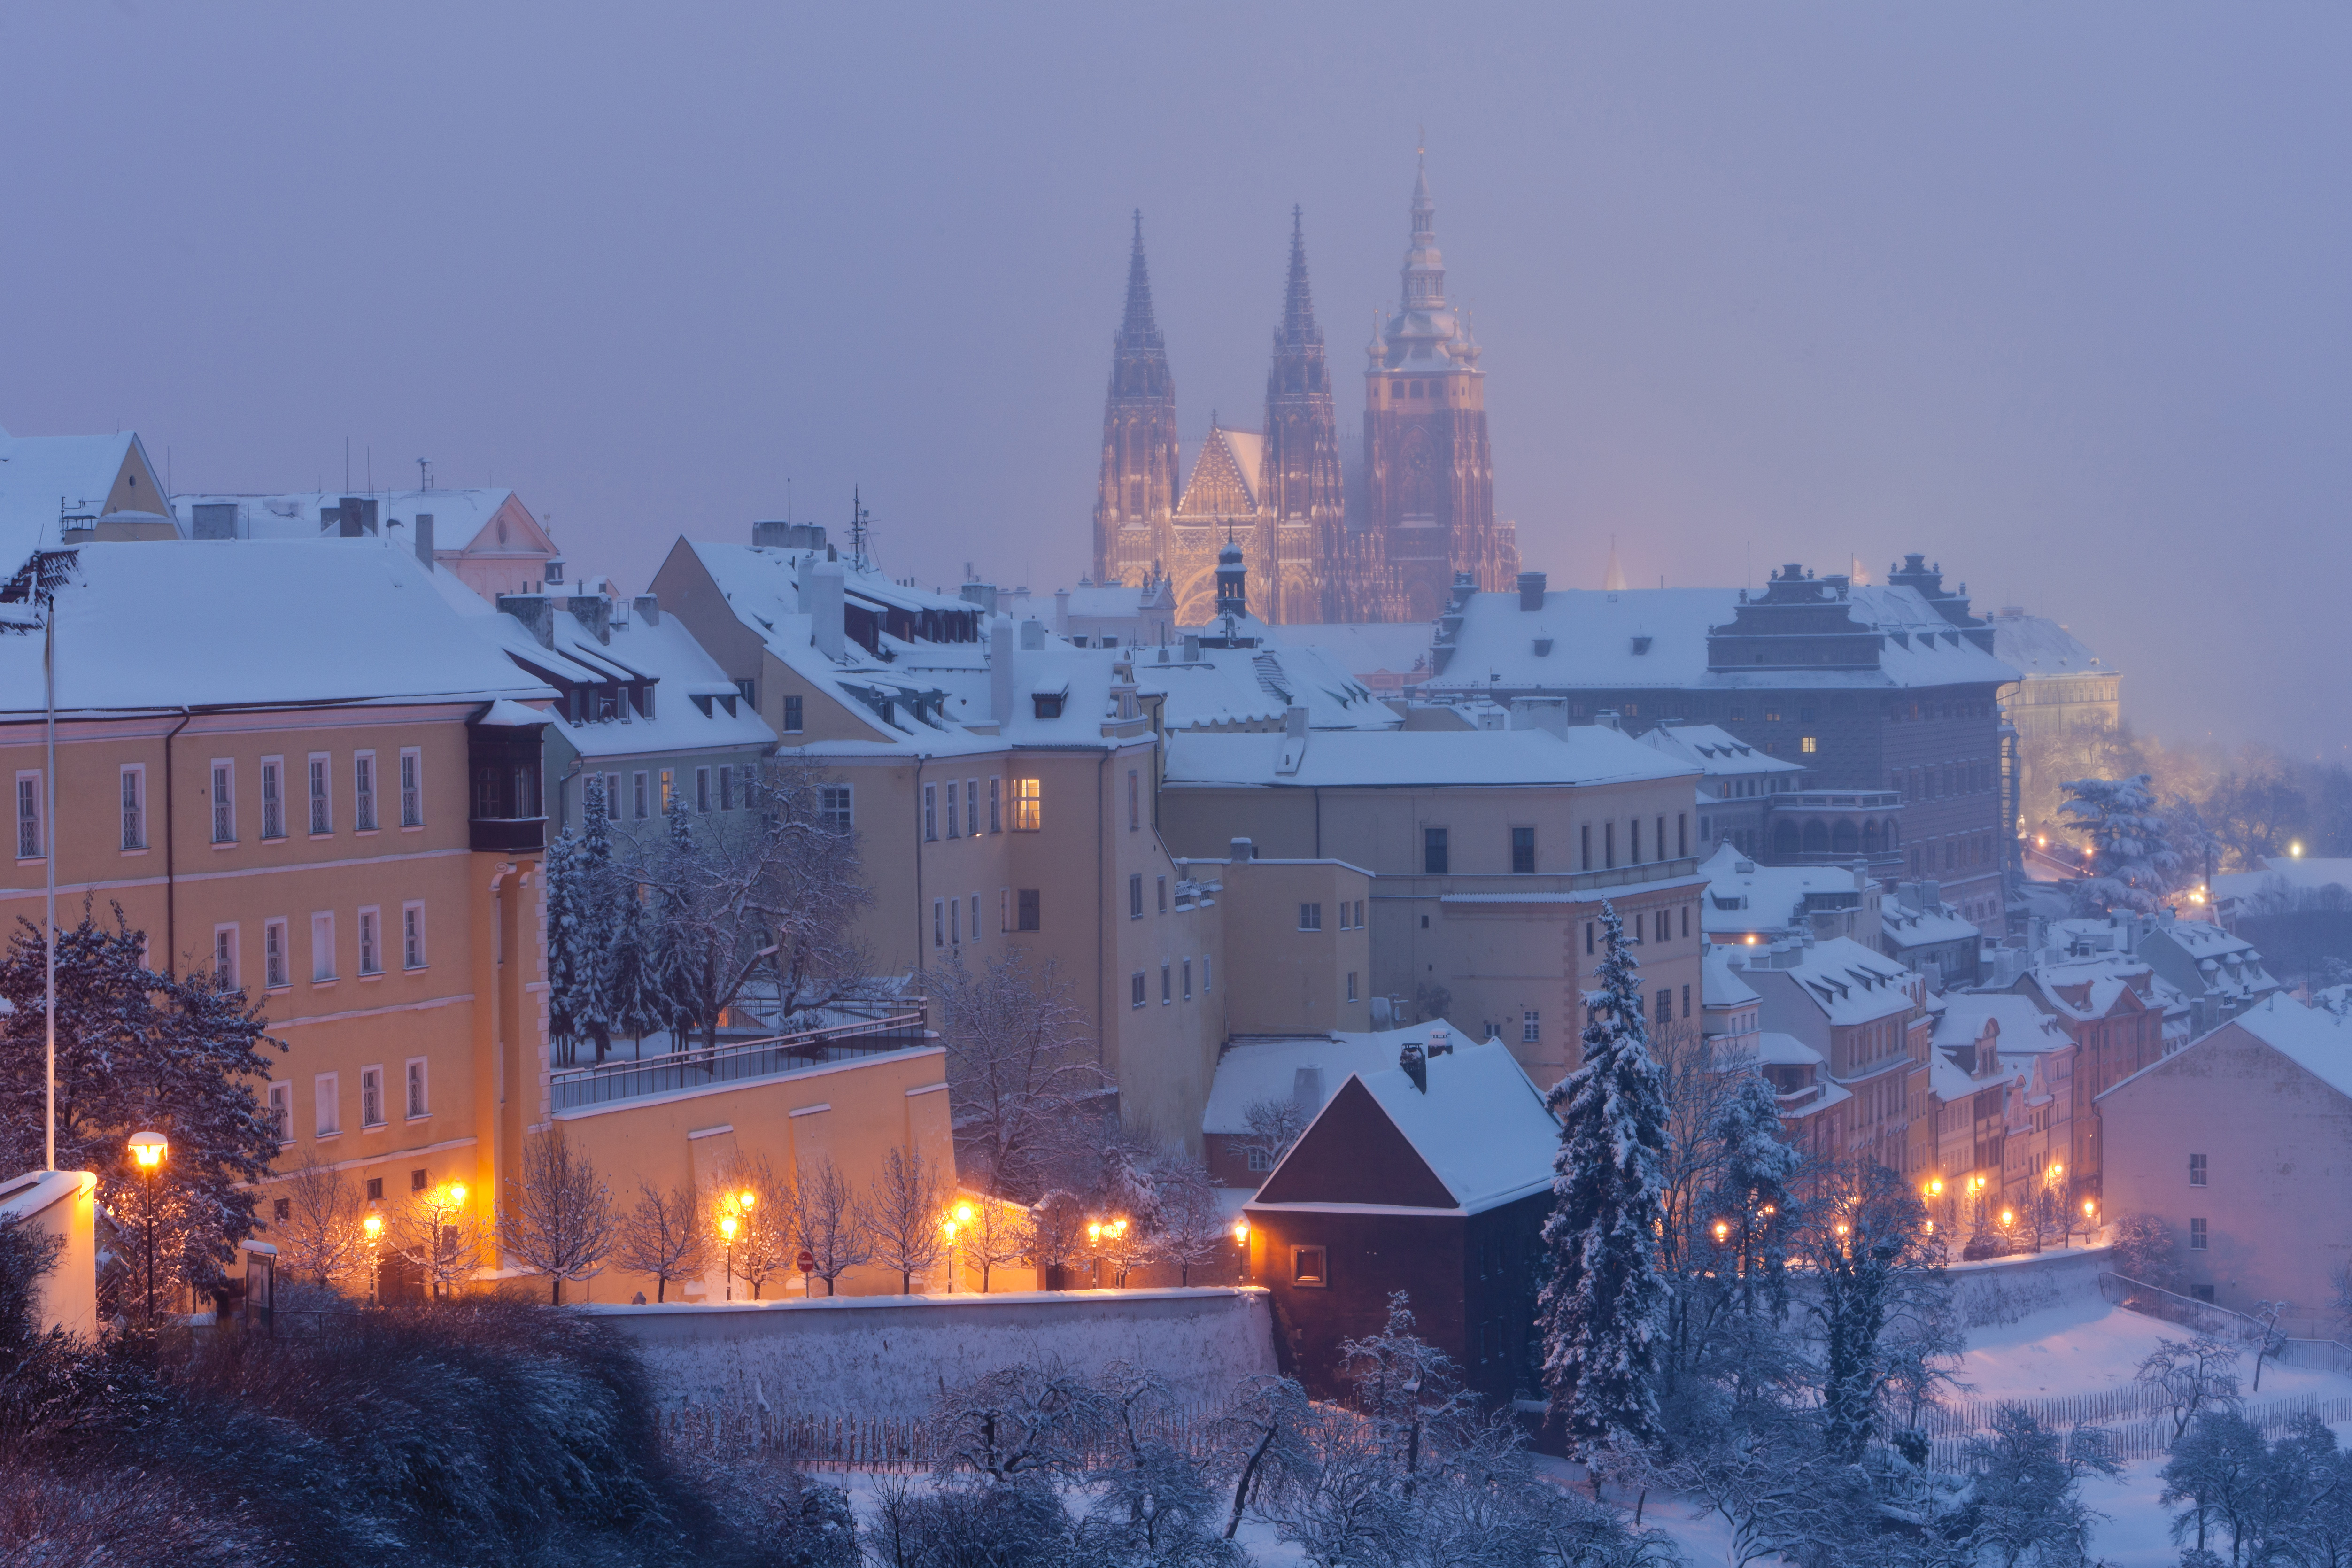 Also this year the sweet scent of mulled wine and trdelník (sweet pastry) will waft around Prague Castle. More than 70 stallholders will display their wares at Christmas markets here.